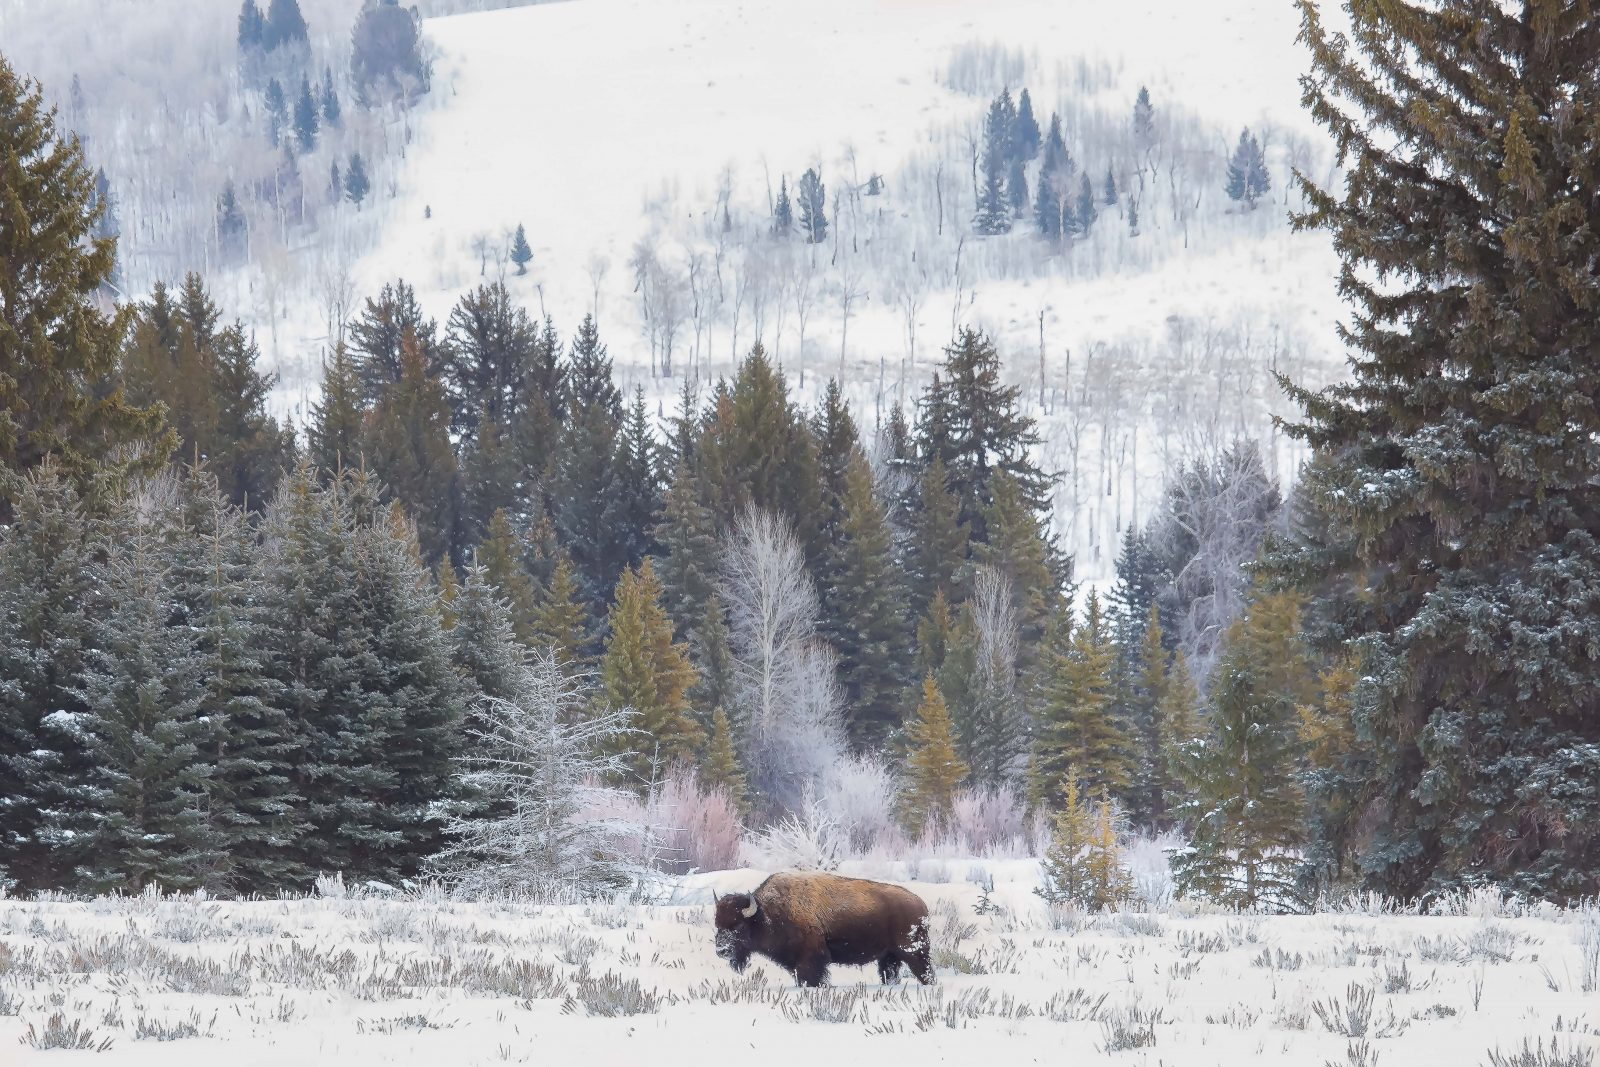 American Bison foraging for food amongst the trees